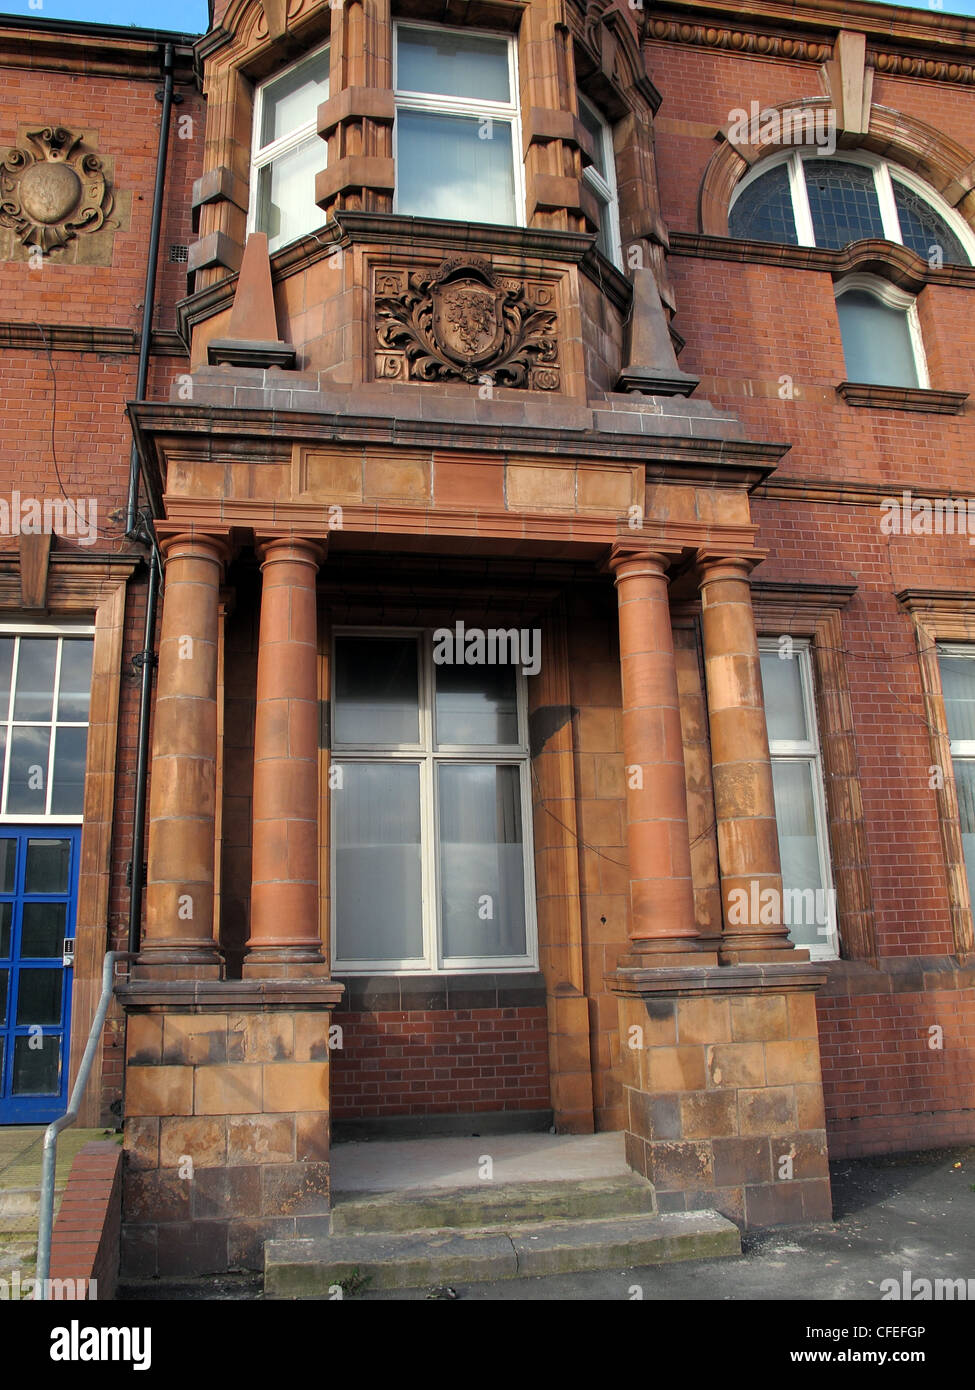 Warrington Police Headquarters Building stonework,Cheshire,Constabulary,Force,gotonysmith,Parker,Street,historic,history,office,offices,Chester,PC,PCs,CSO,CSOs,victorian,victorians,and,stone,sandstone,gotonysmith,Warringtonians,Buy Pictures of,Buy Images Of